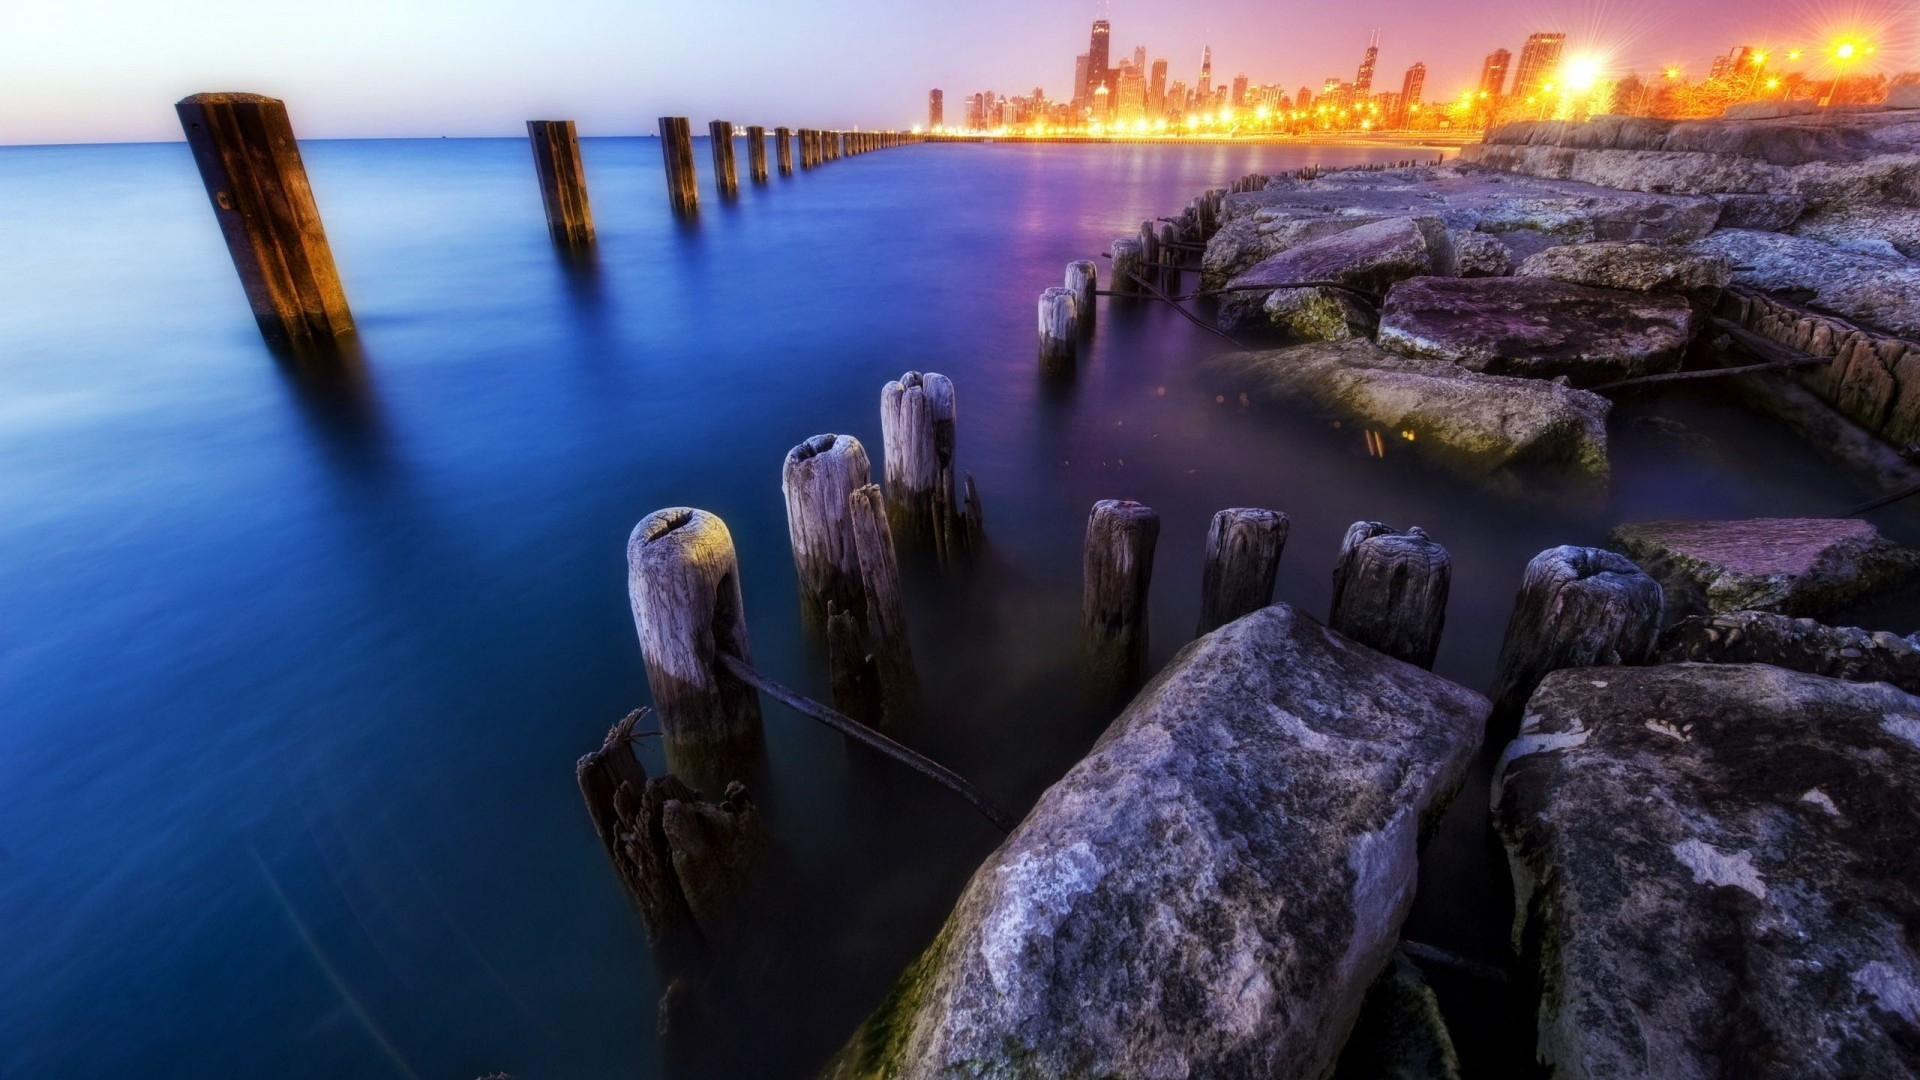 1920x1080 Chicago Illinois desktop PC and Mac wallpaper 1920x1080